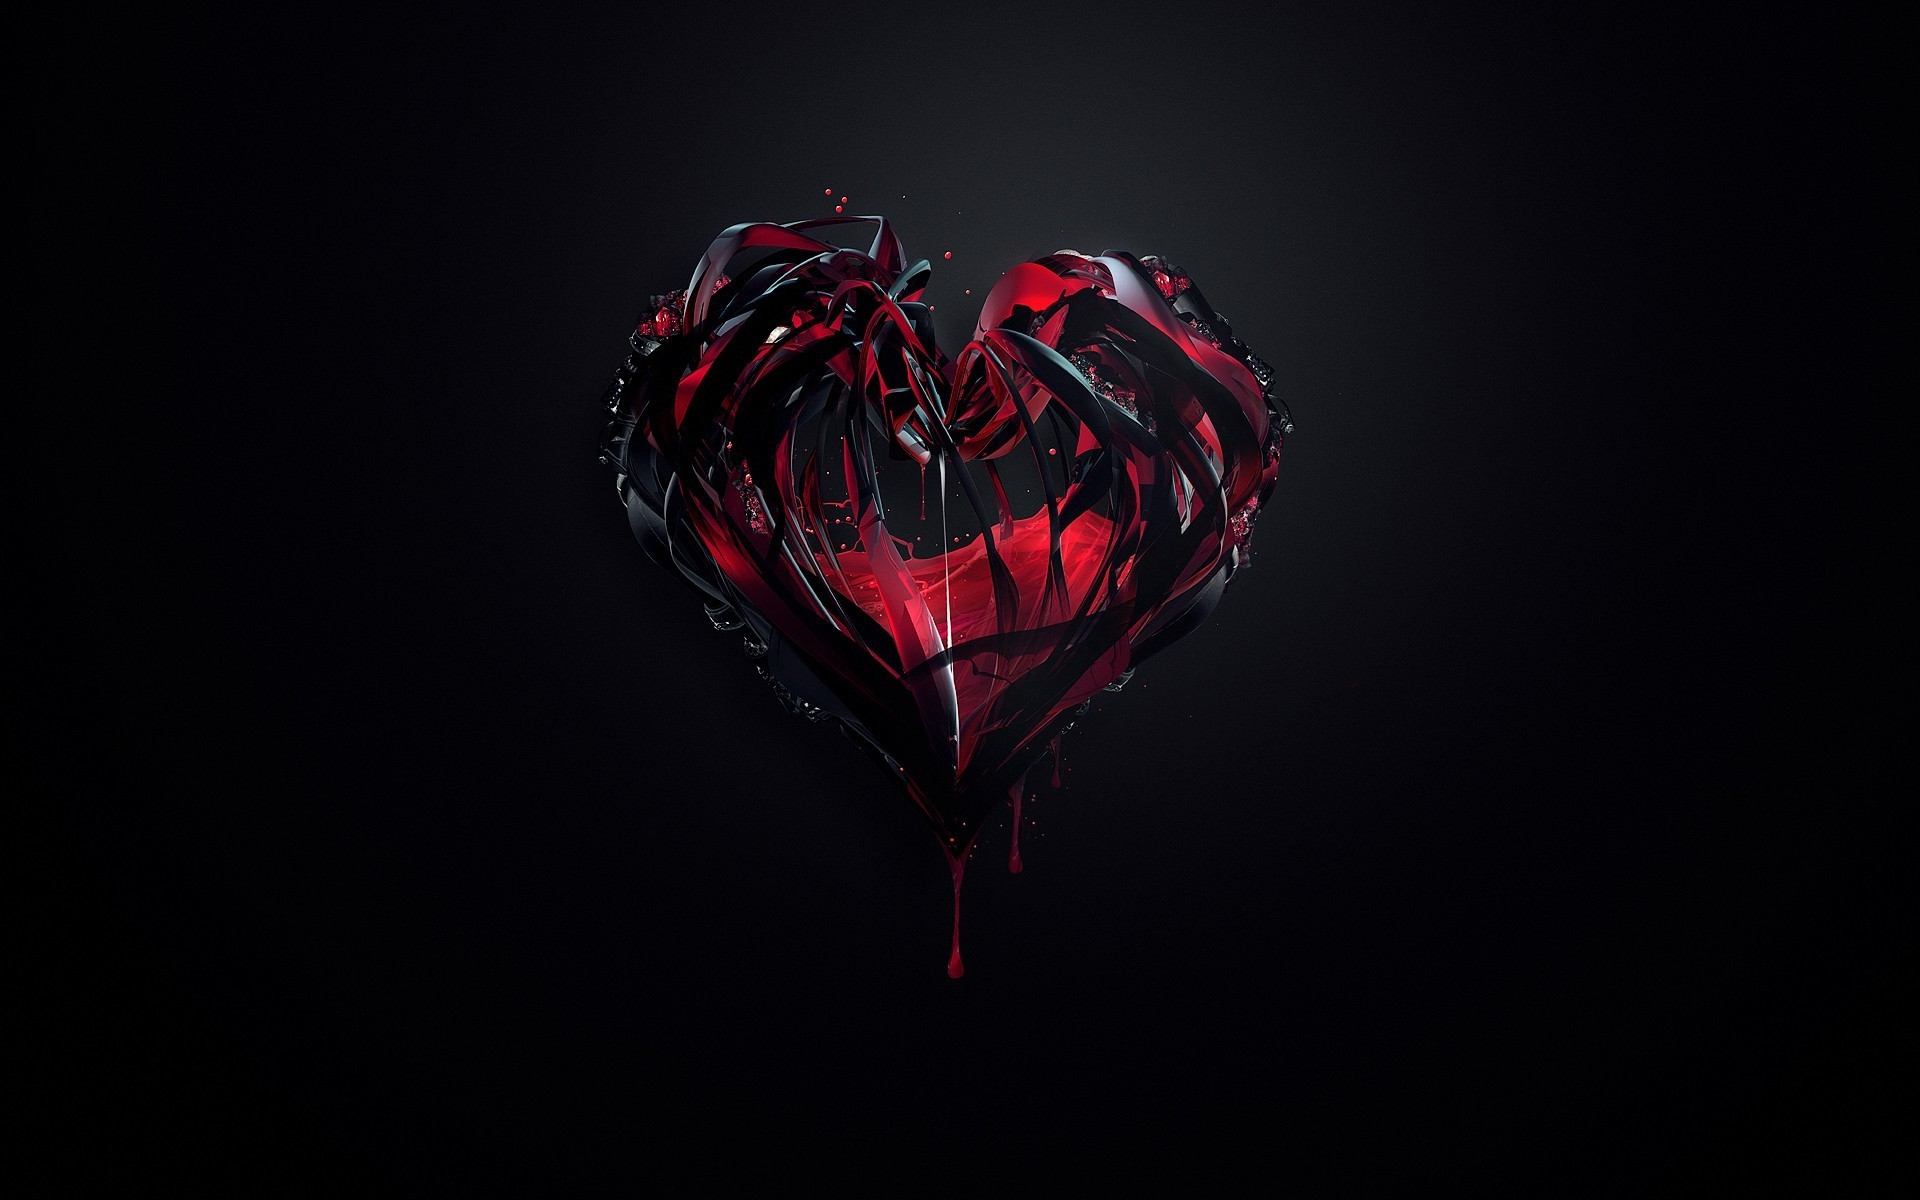 Heartbeat Wallpaper 70 Images